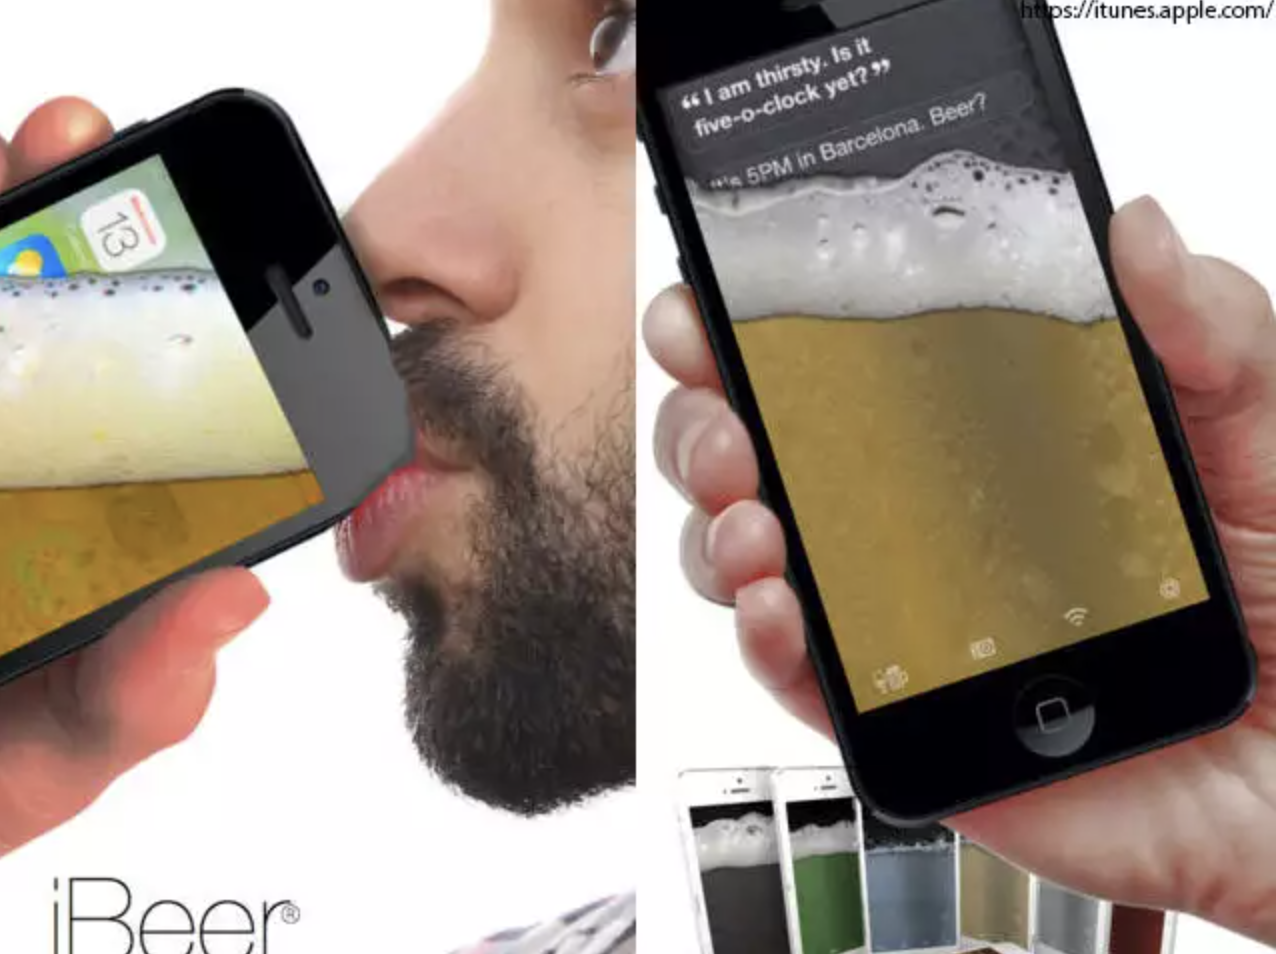 Screenshot of iBeer app featuring a man drinking what looks like a frothy beer out of his iPhone